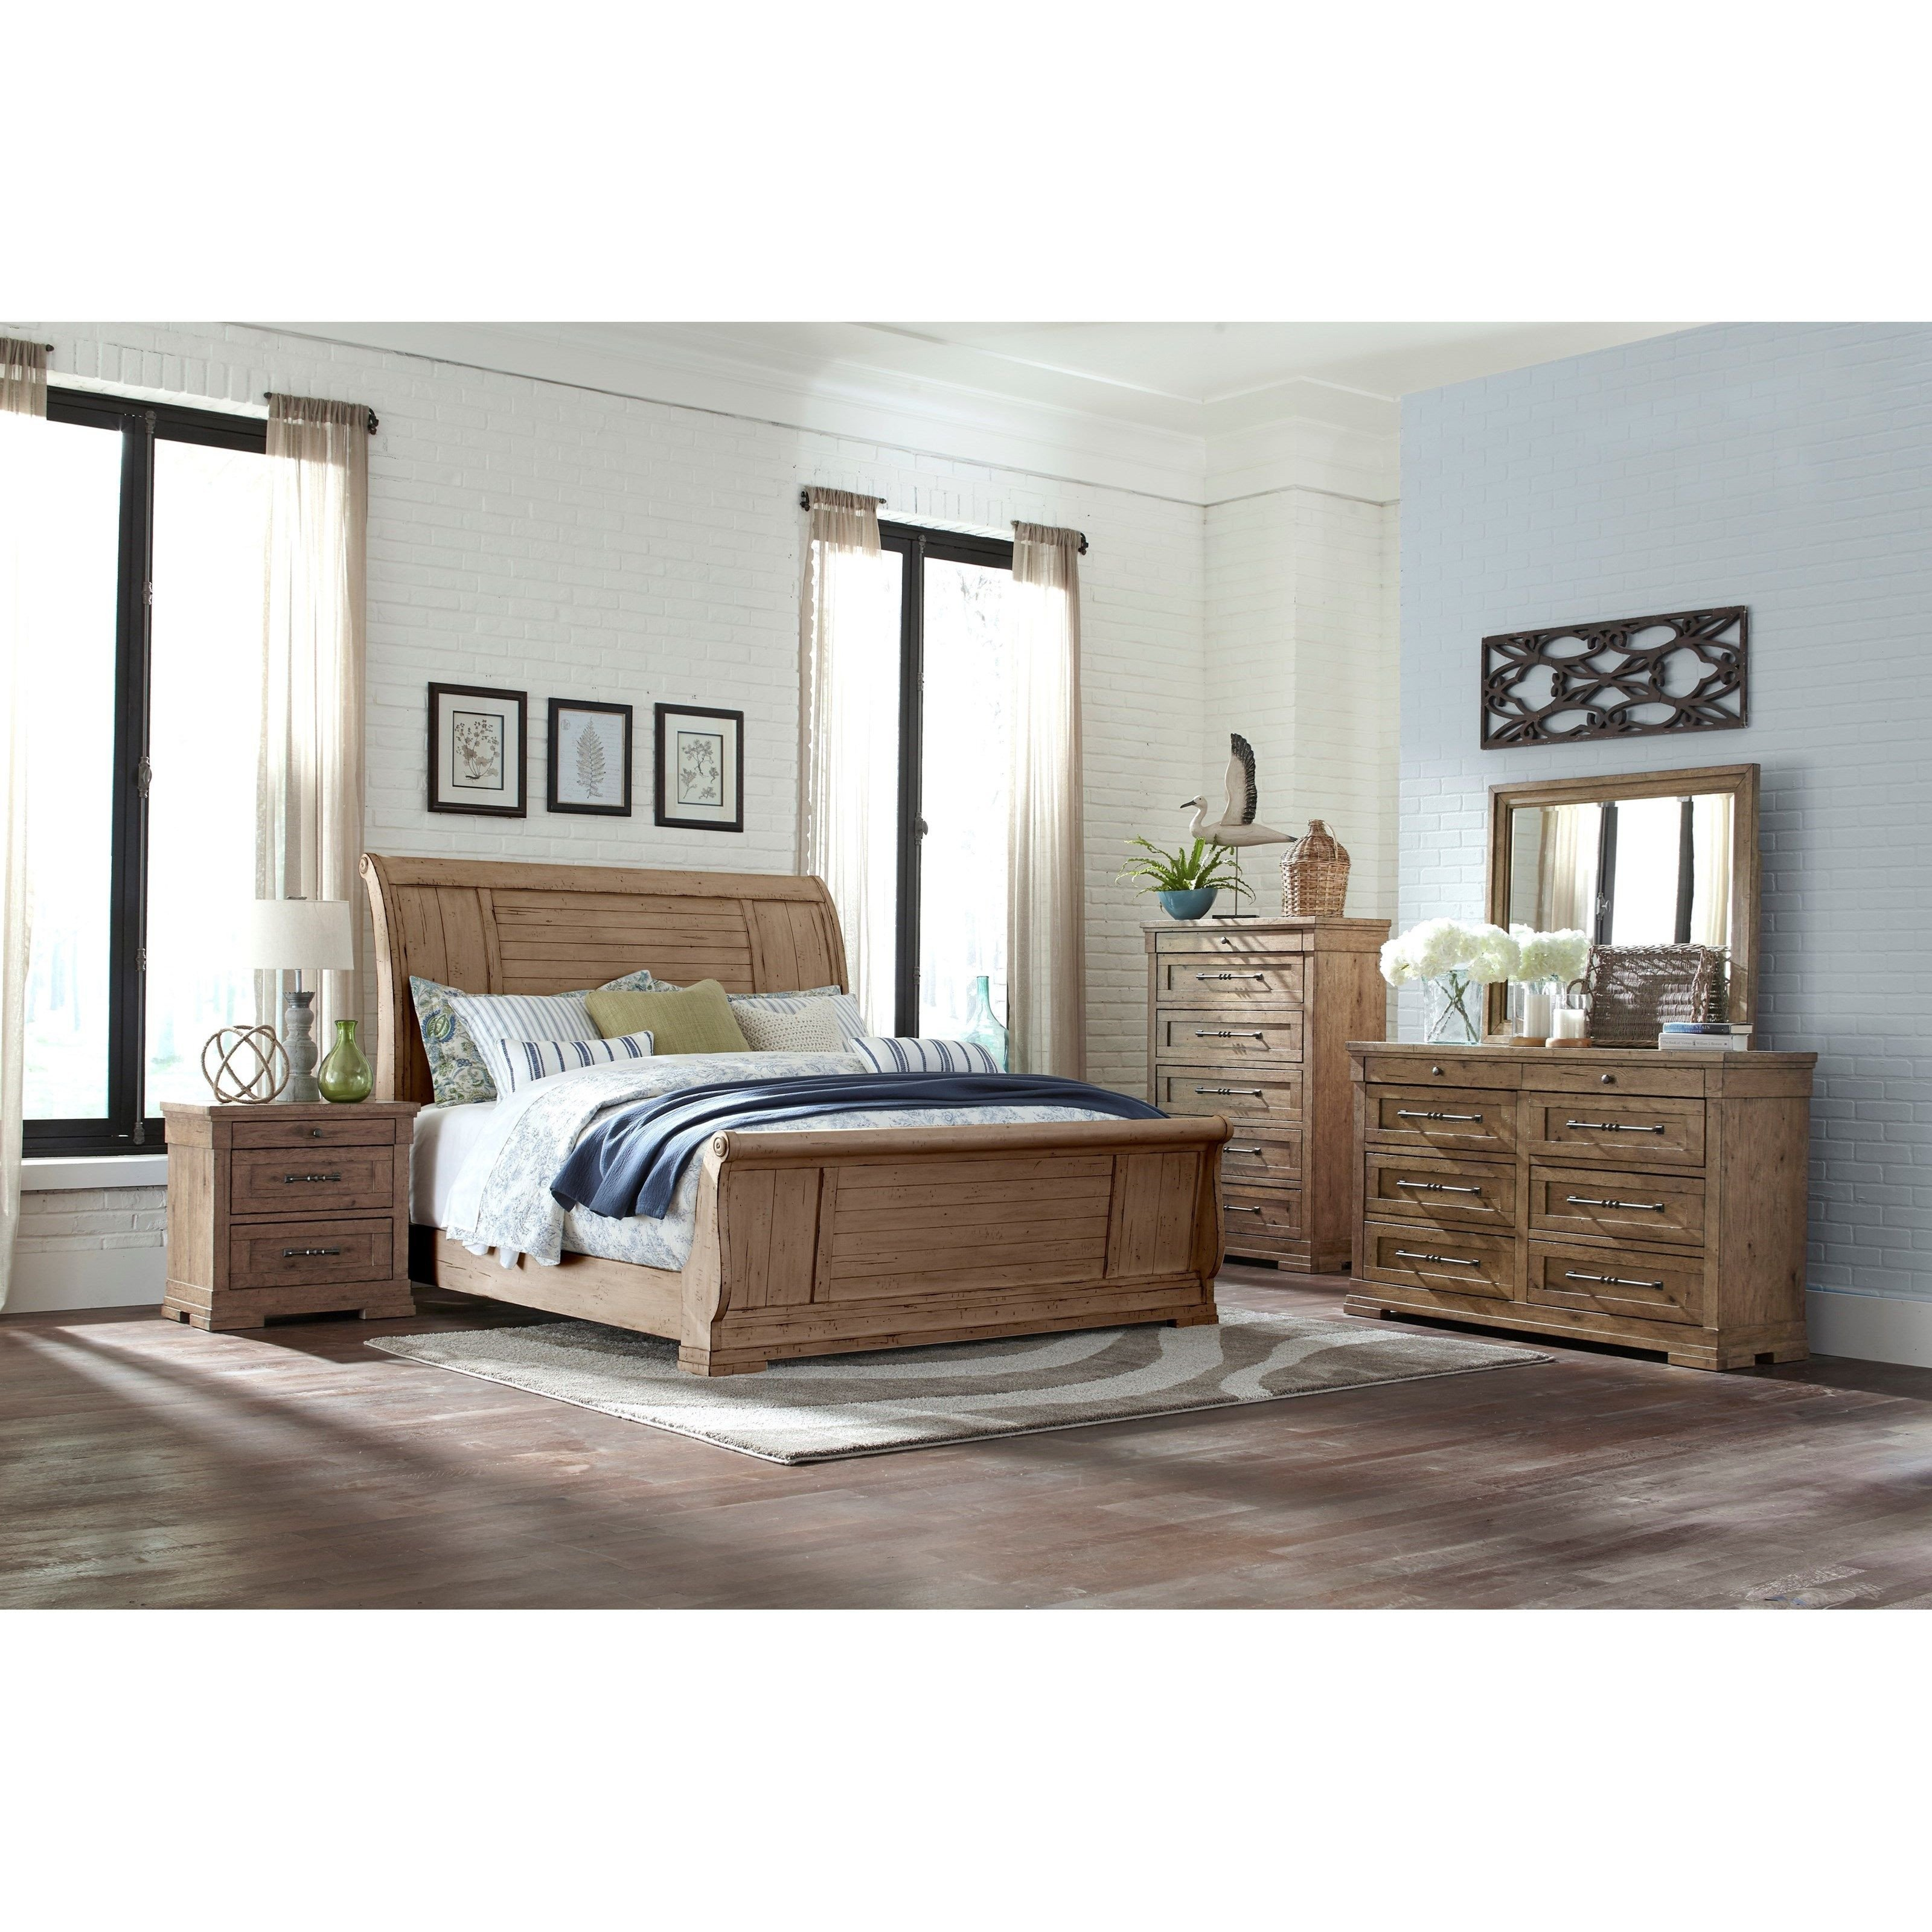 Trisha Yearwood Bedroom Furniture Elegant Ing Home Retreat Queen Sleigh Bed by Trisha Yearwood Home